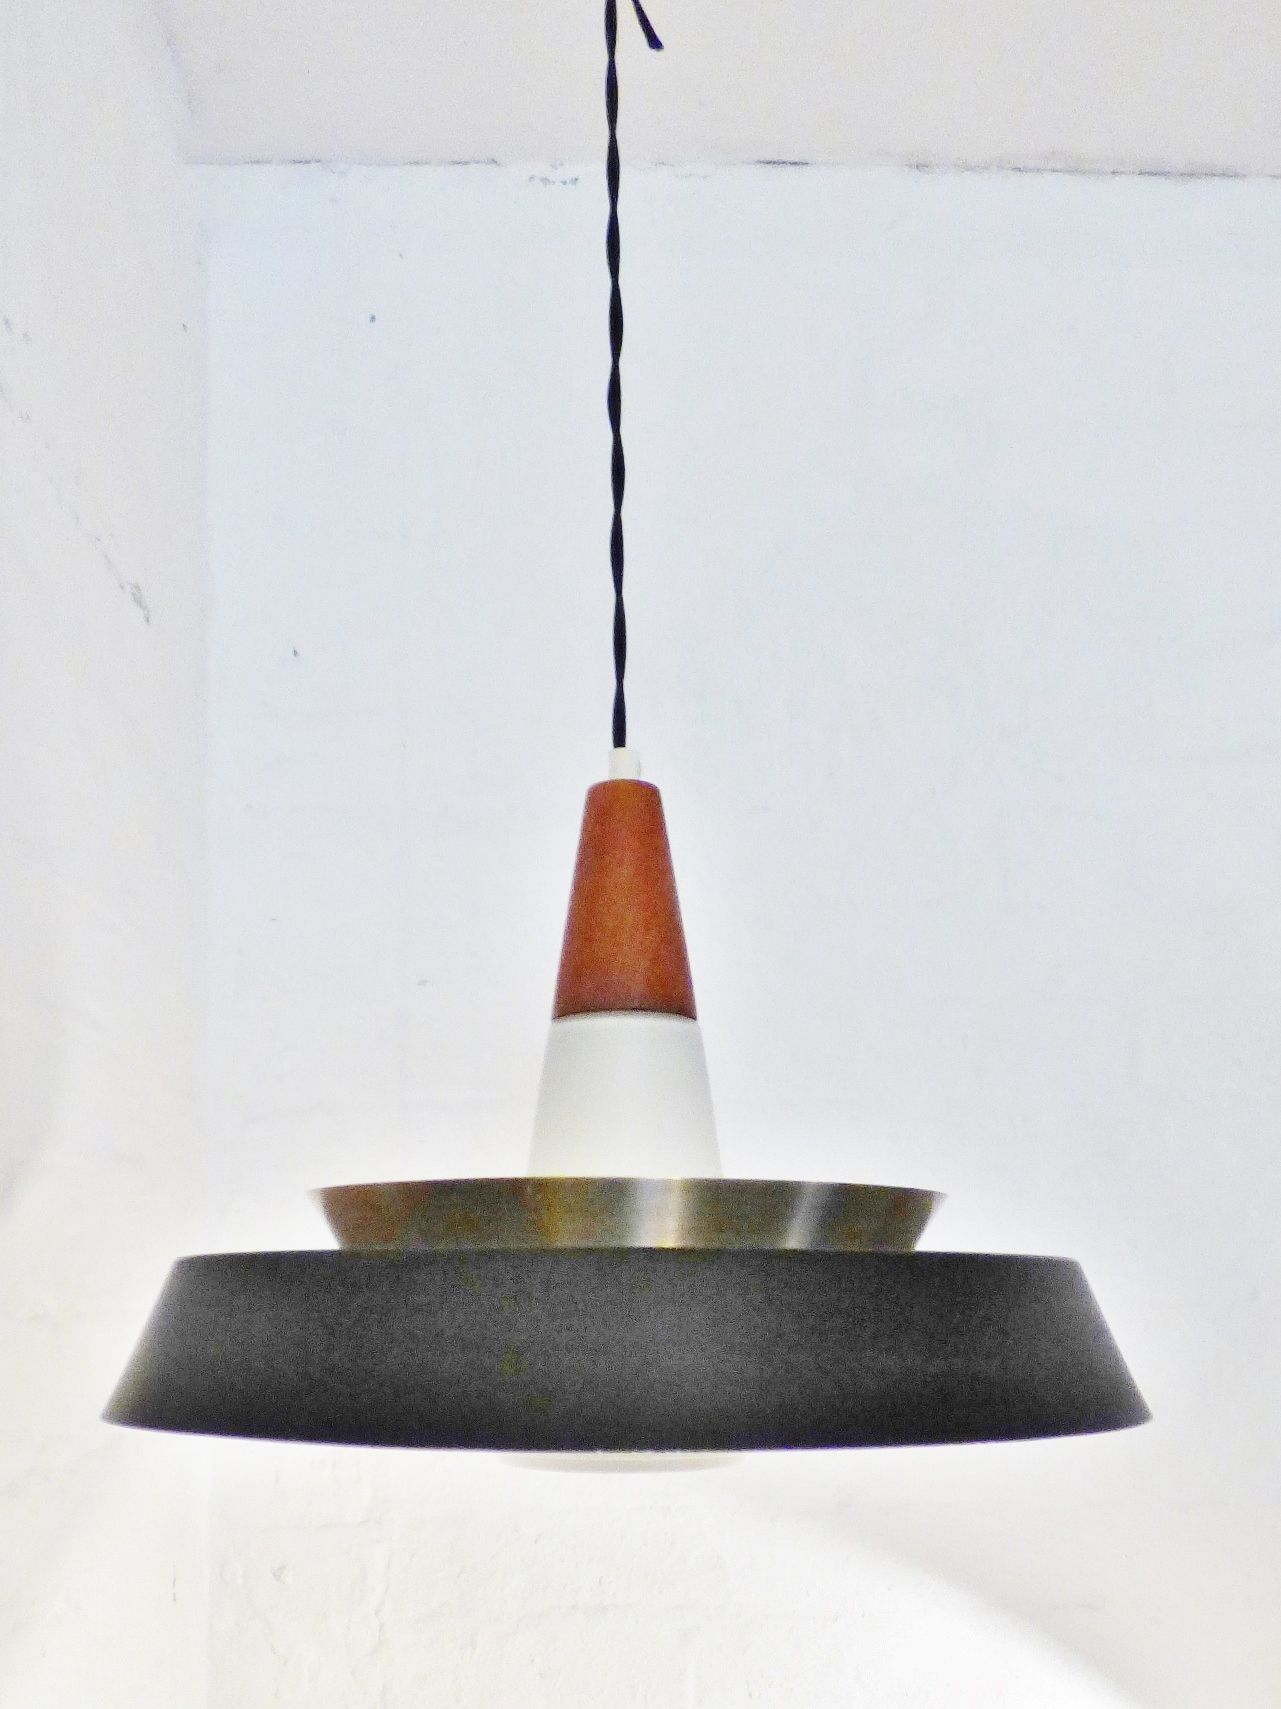 1950s Danish Teak Br Aluminium And Gl Pendant Lamp Www Archivefurniture Co Uk